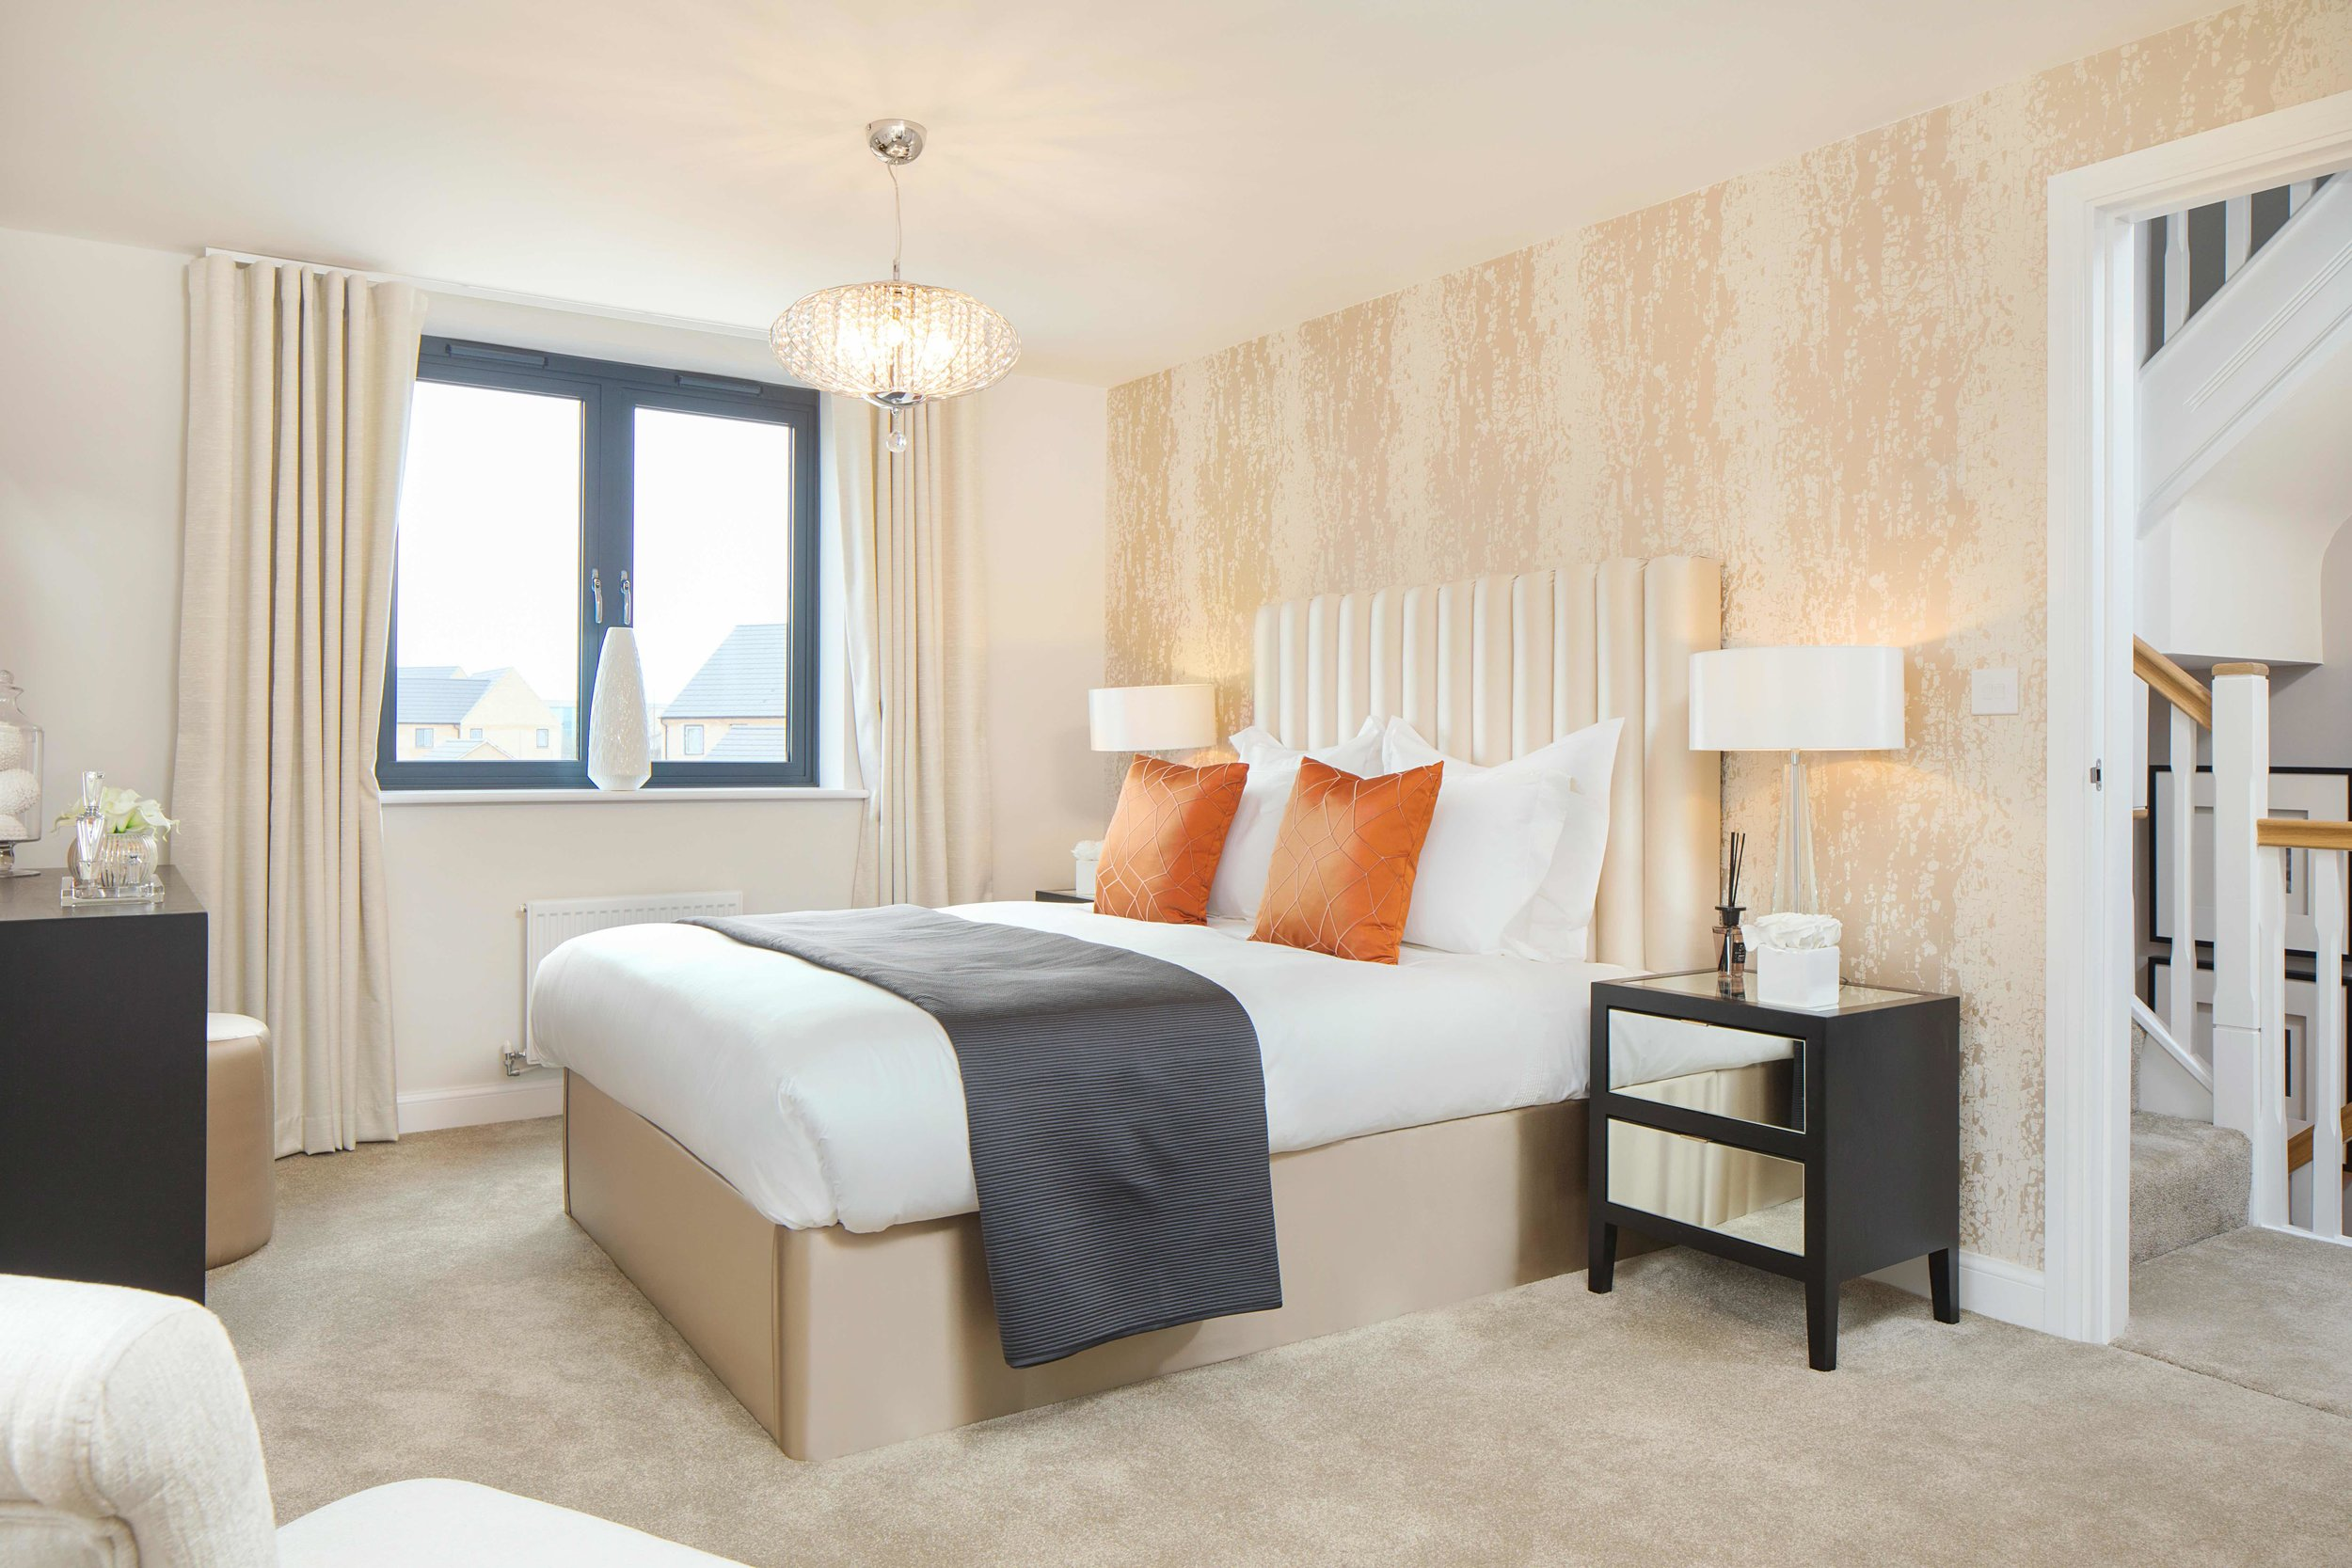 Barratt Homes interior 5.jpg